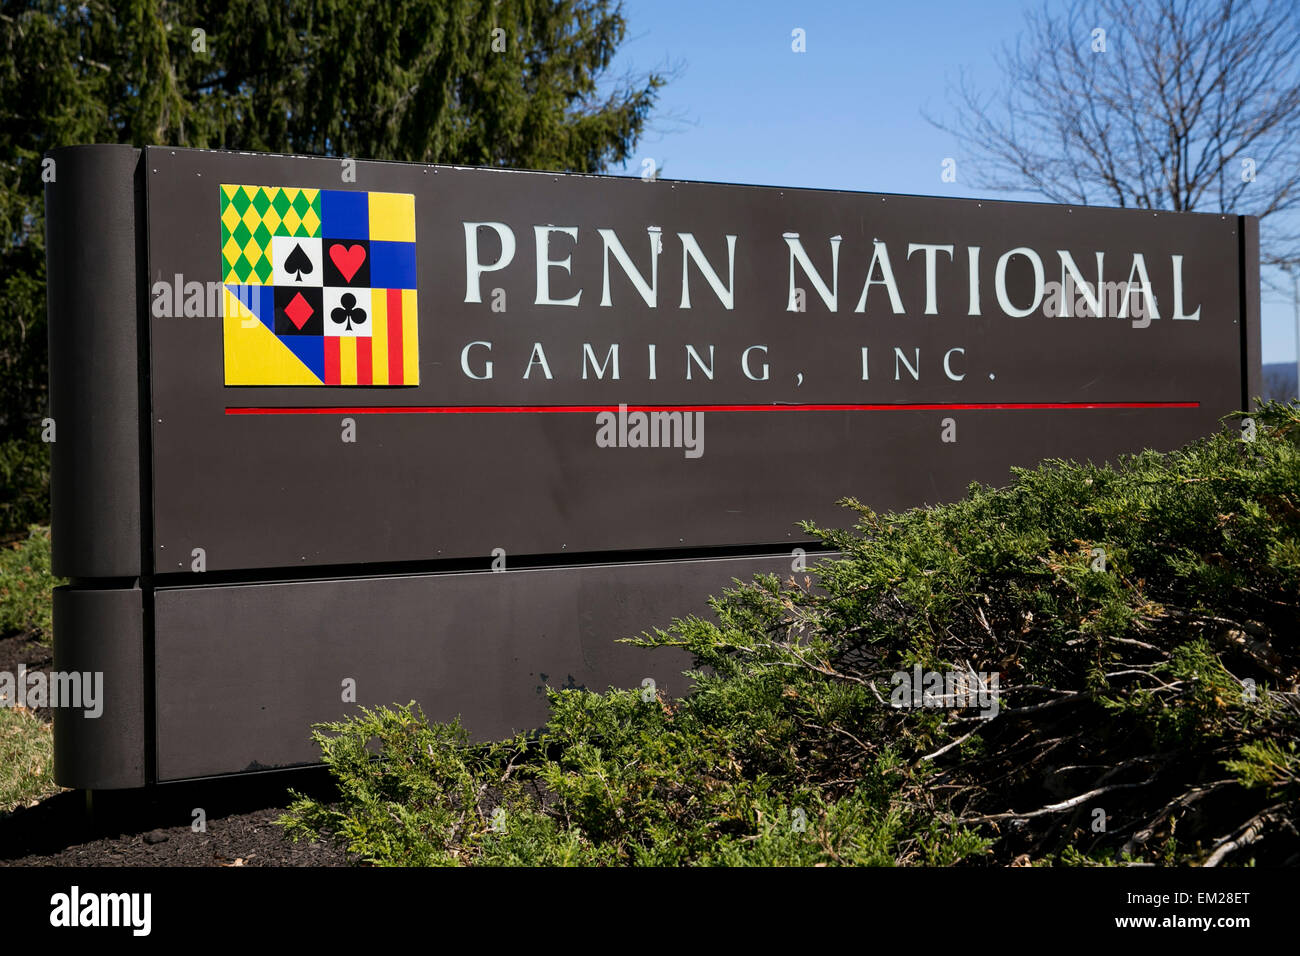 A logo sign outside the headquarters of Penn National Gaming, Inc., in Wyomissing, Pennsylvania. - Stock Image